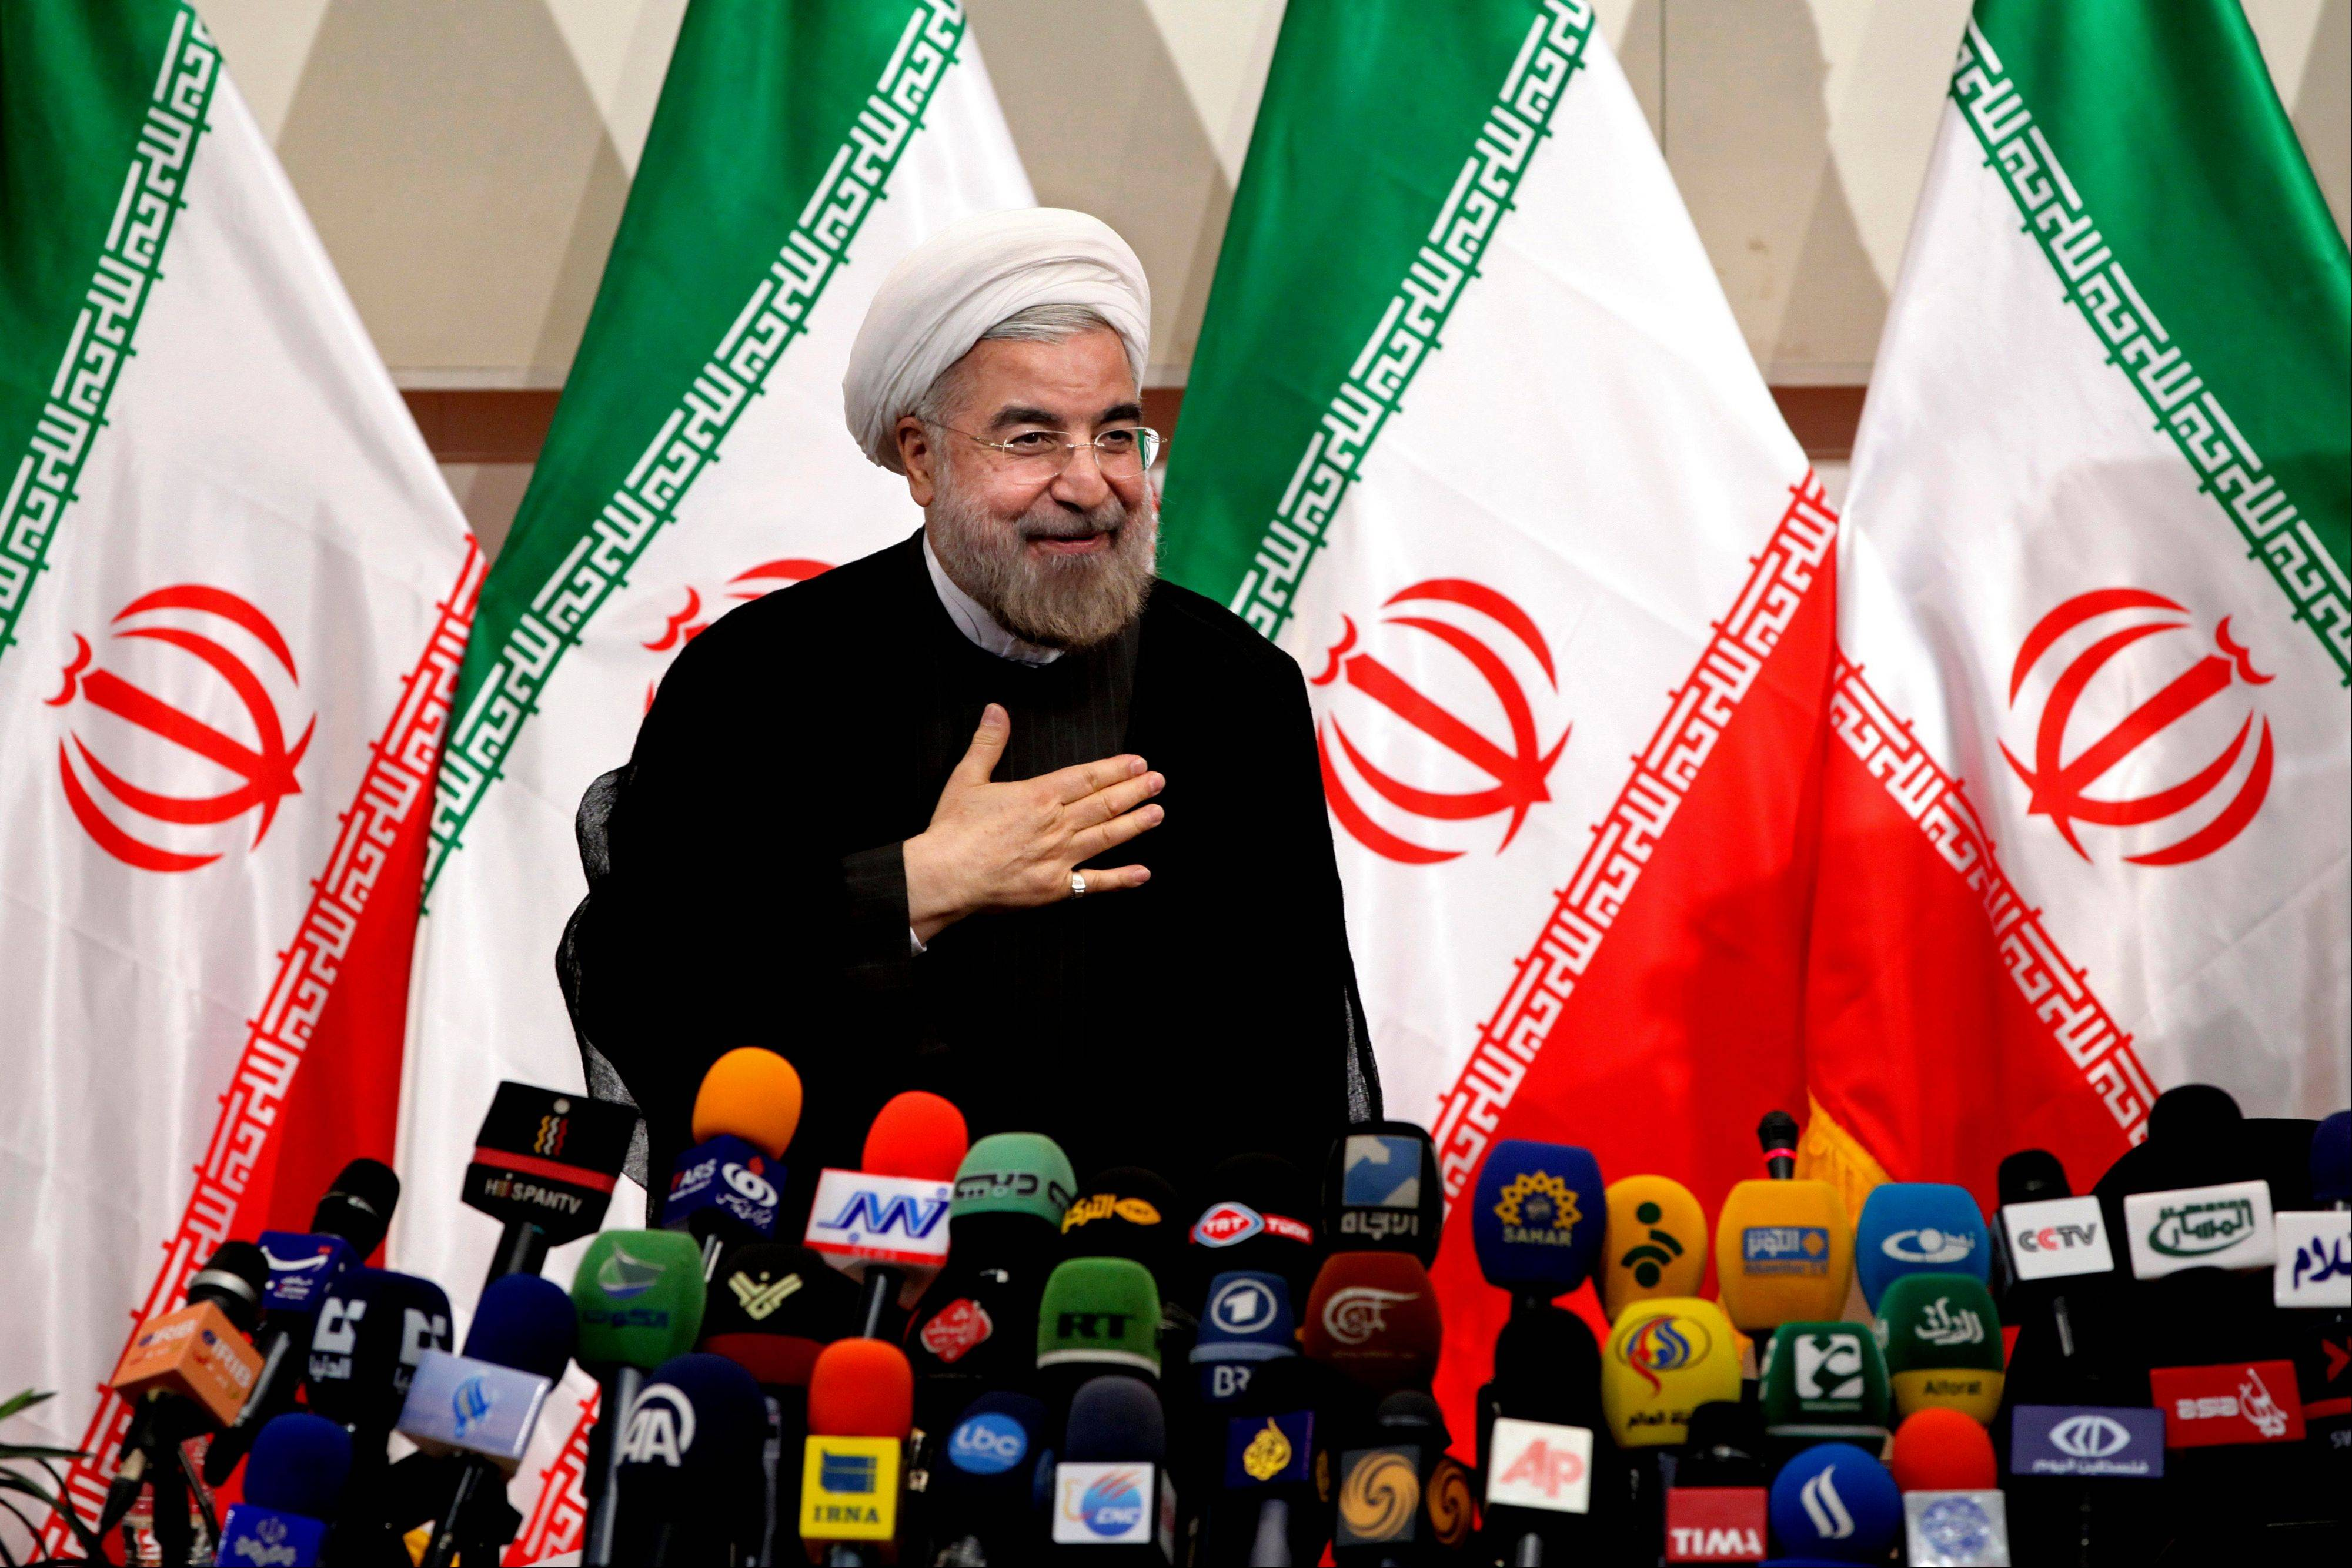 Iranian President-elect Hasan Rouhani, places his hand on his heart as a sign of respect, after speaking at a news conference, in Tehran, Iran. Rouhani on Monday leveled his first criticism of the outgoing administration since June's election, saying it has mismanaged the country's economy.